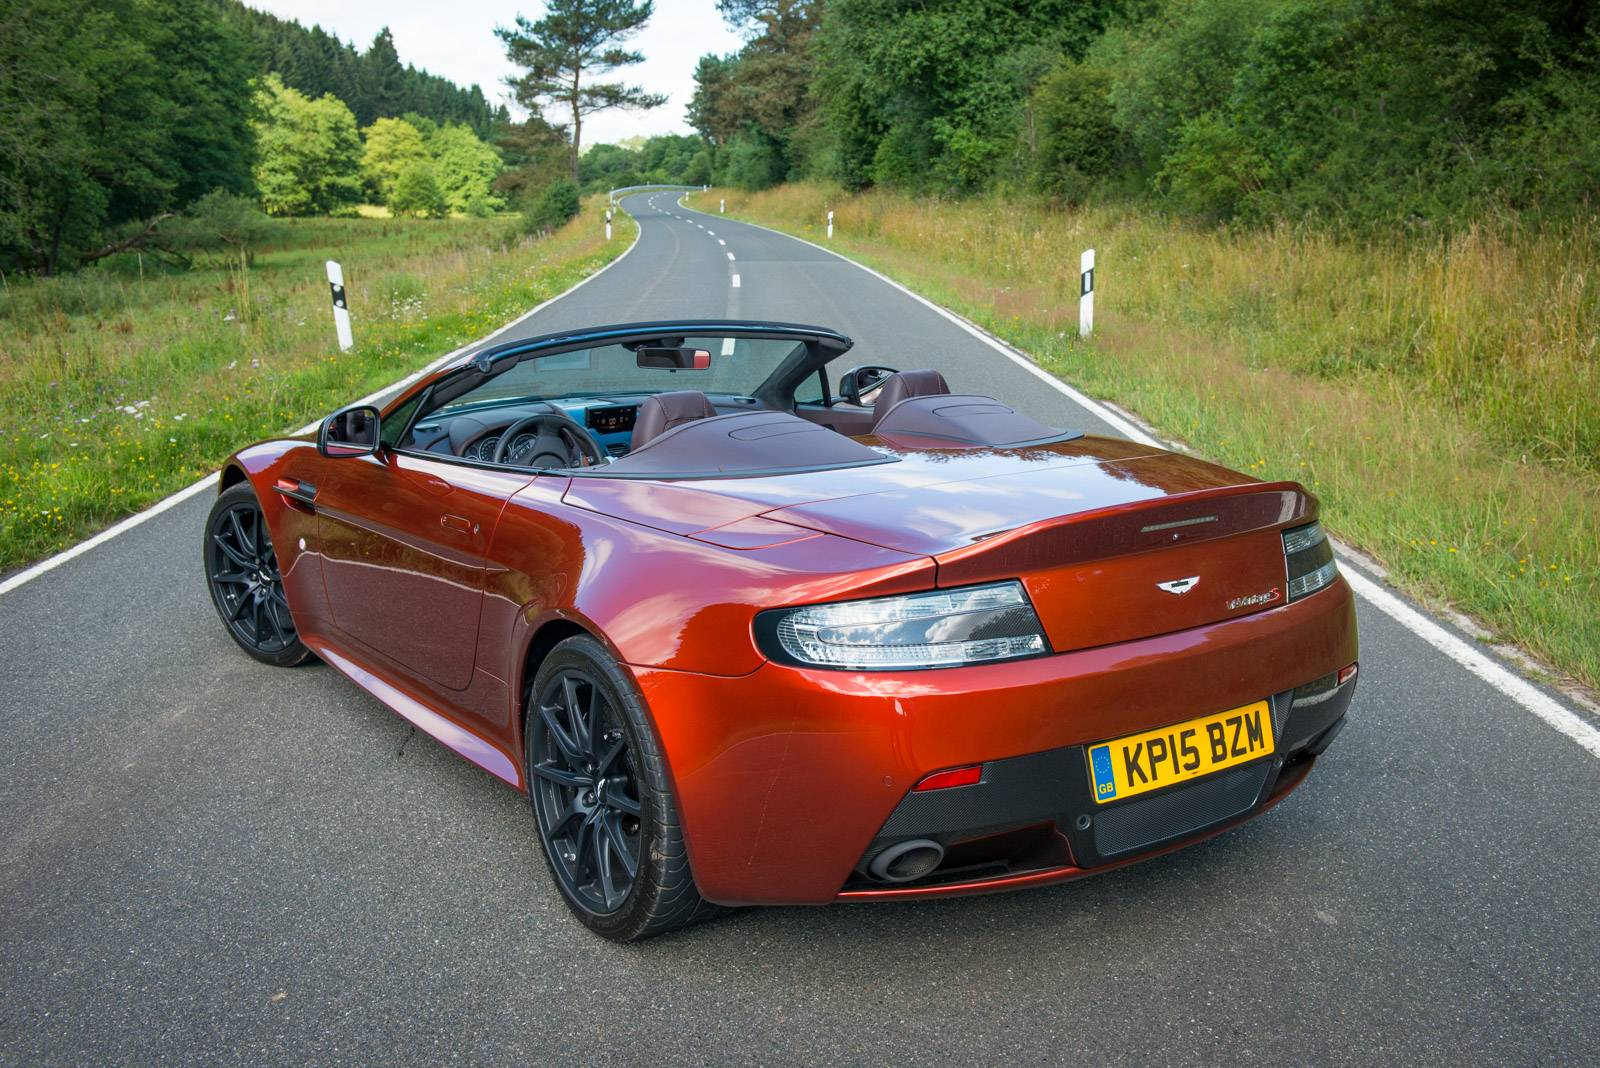 2019 Aston Martin V12 Vantage Roadster photo - 6